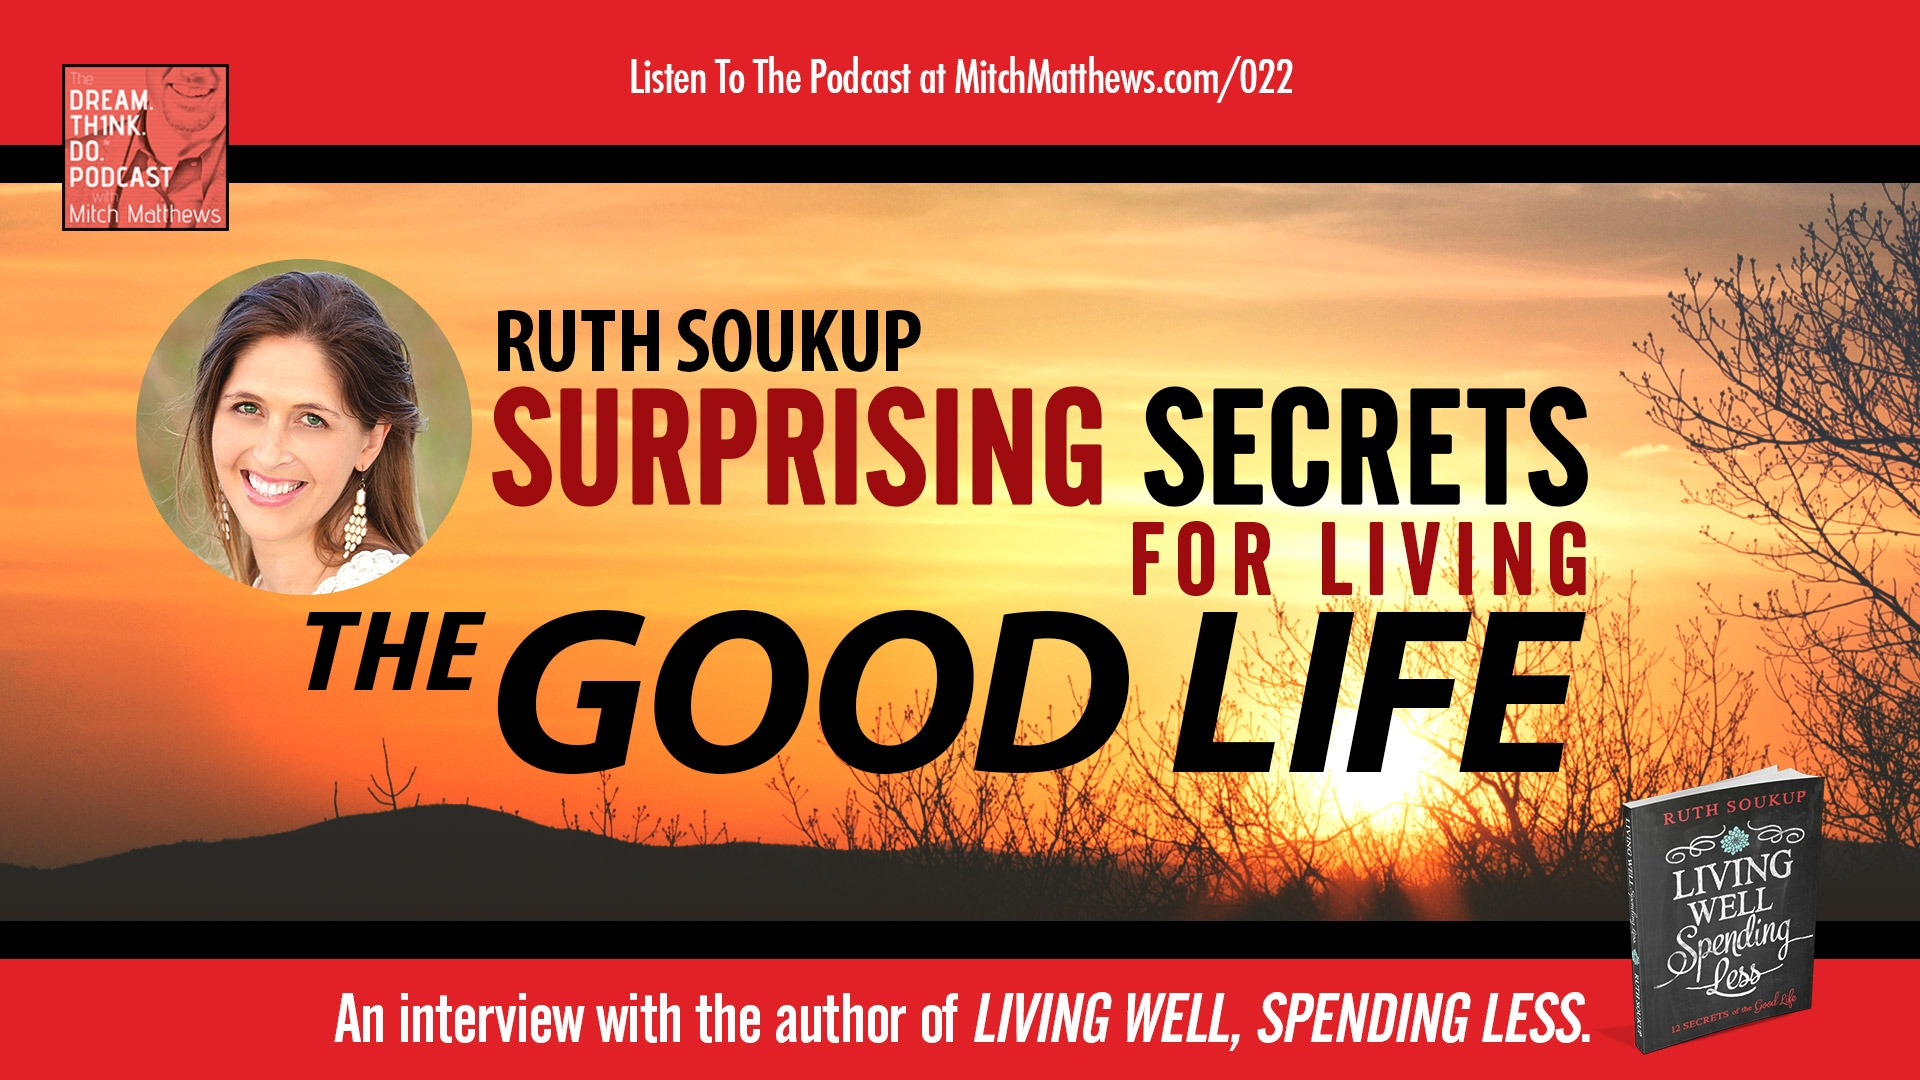 Ruth-Soukup Surprising-Secrets-for-Living-The-Good-Life